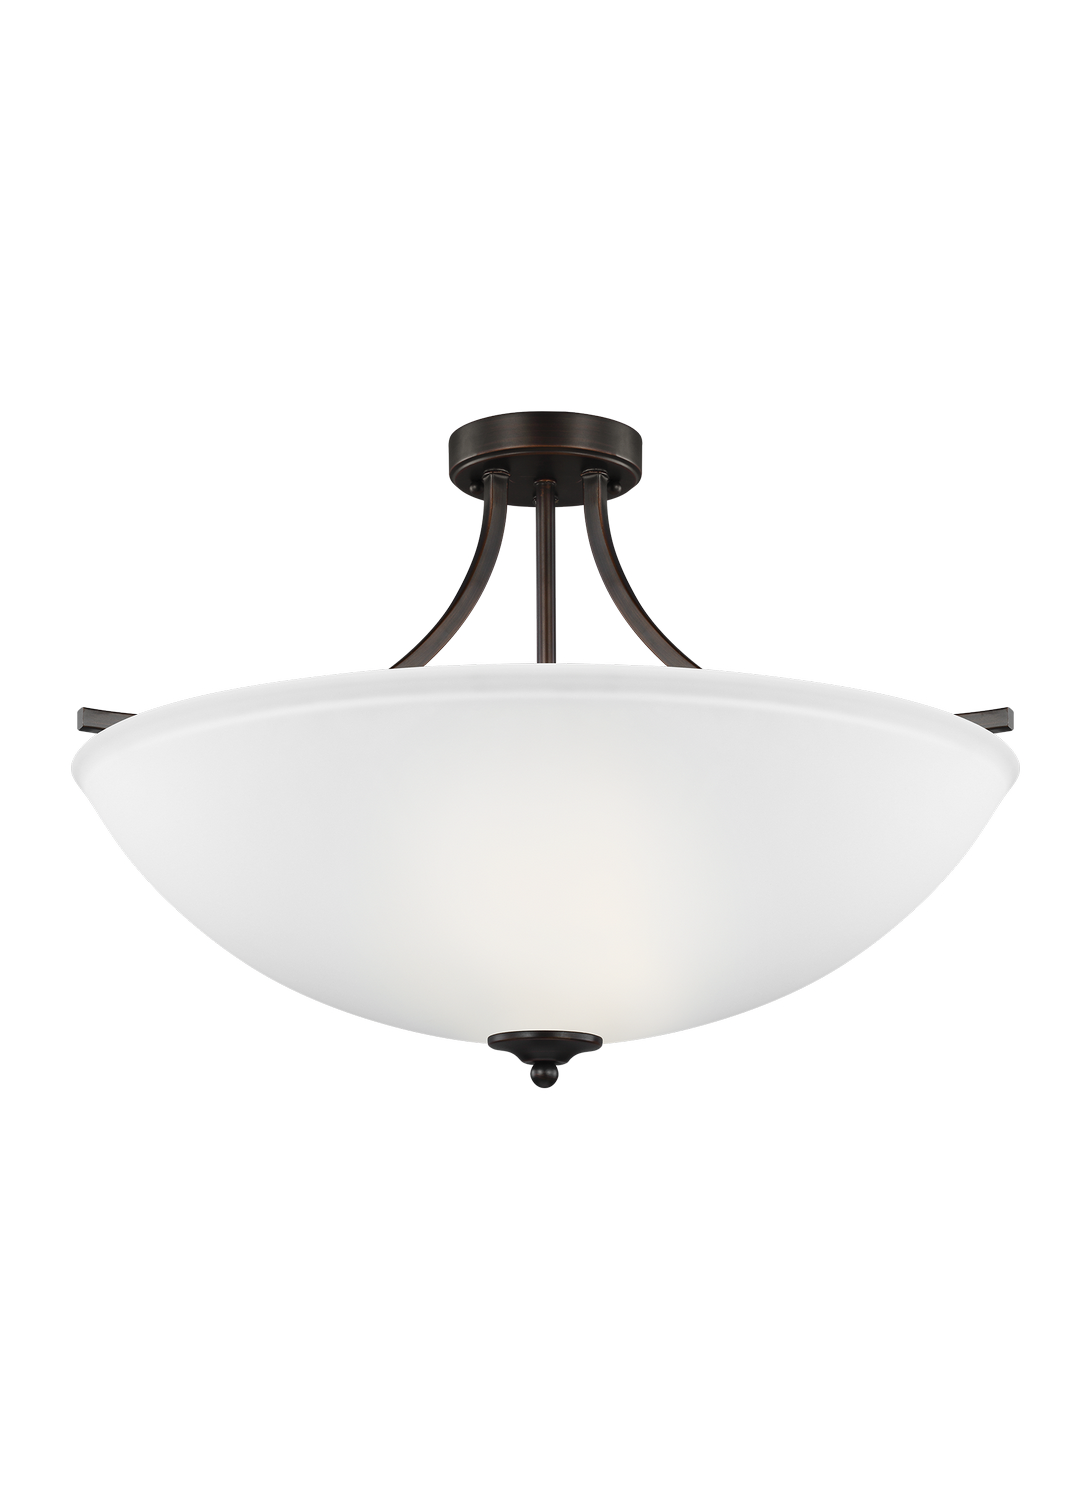 Four Light Semi-Flush Convertible Pendant